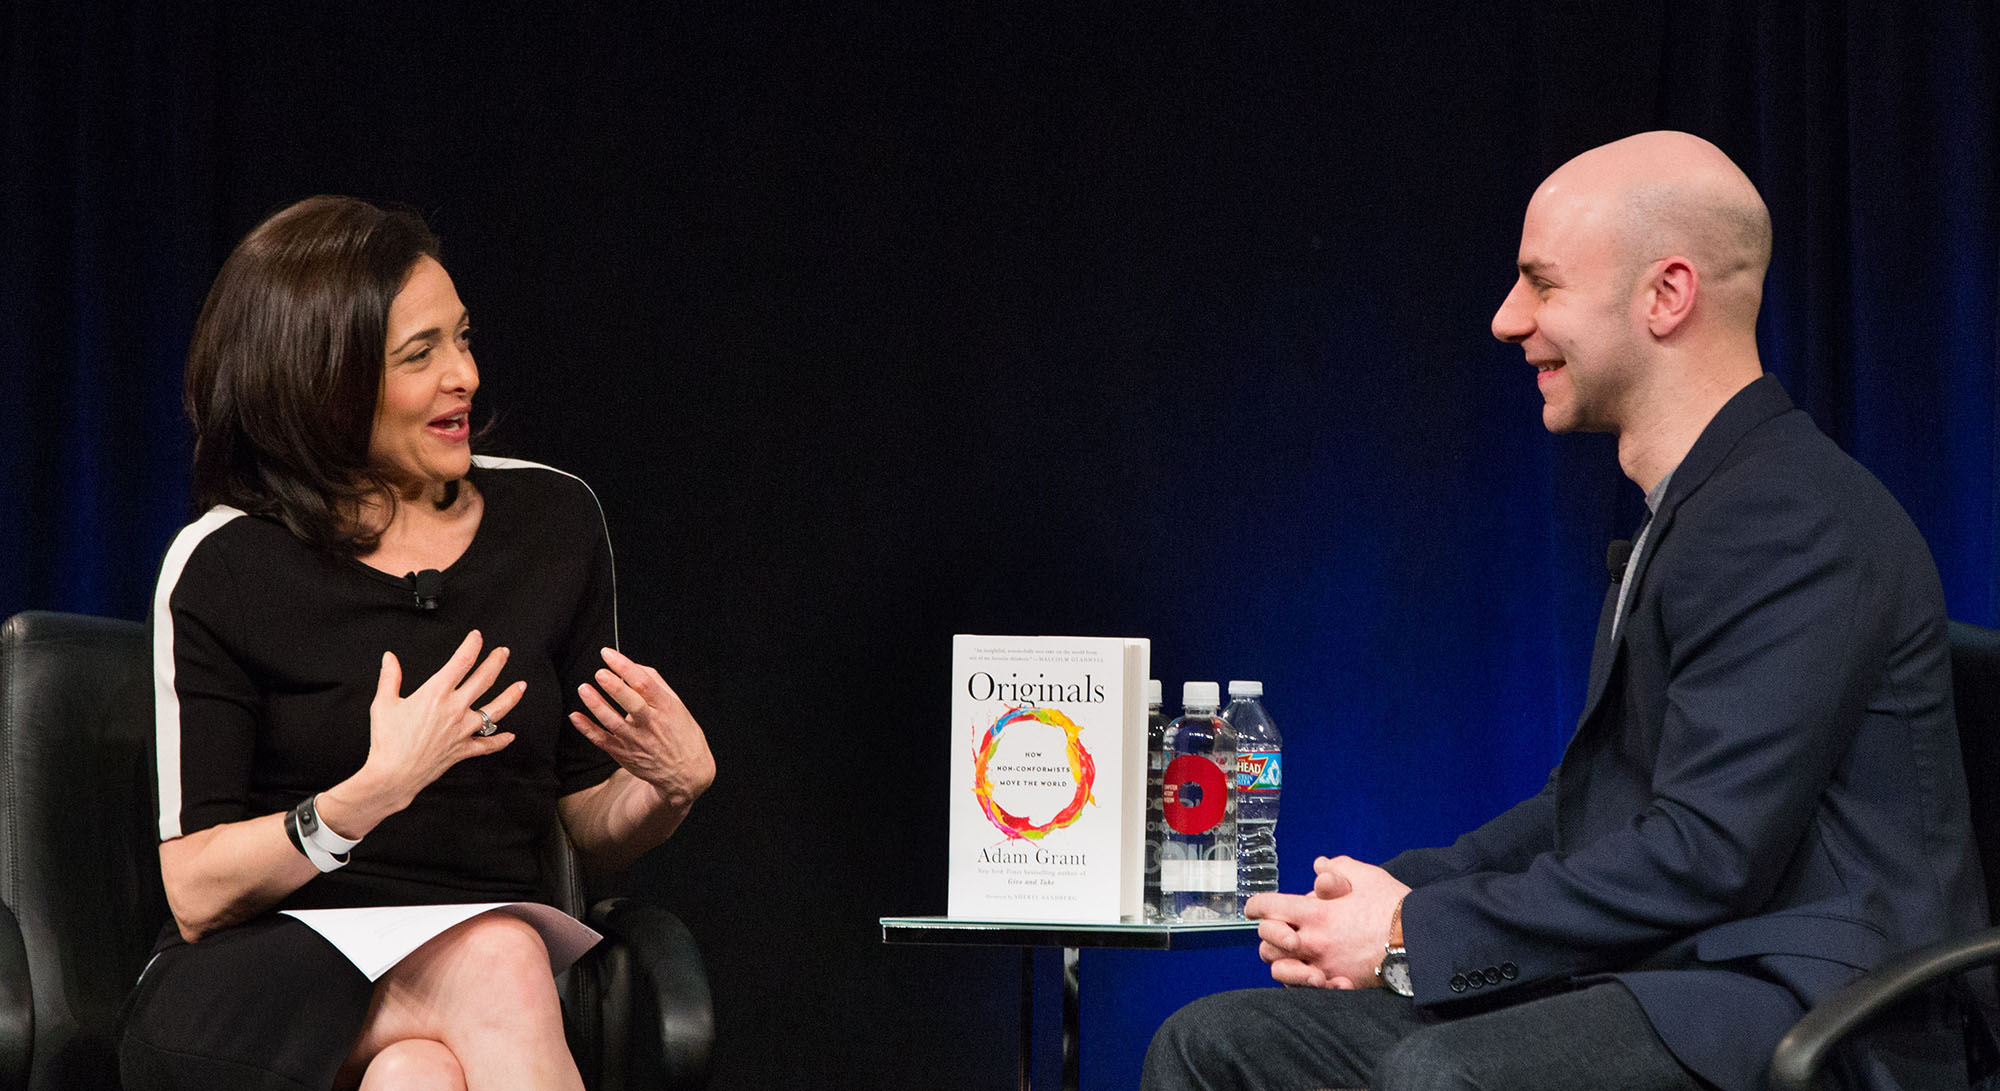 Facebook COO Sheryl Sandberg leads a conversation with author Adam Grant about his book, <em>Originals</em>.